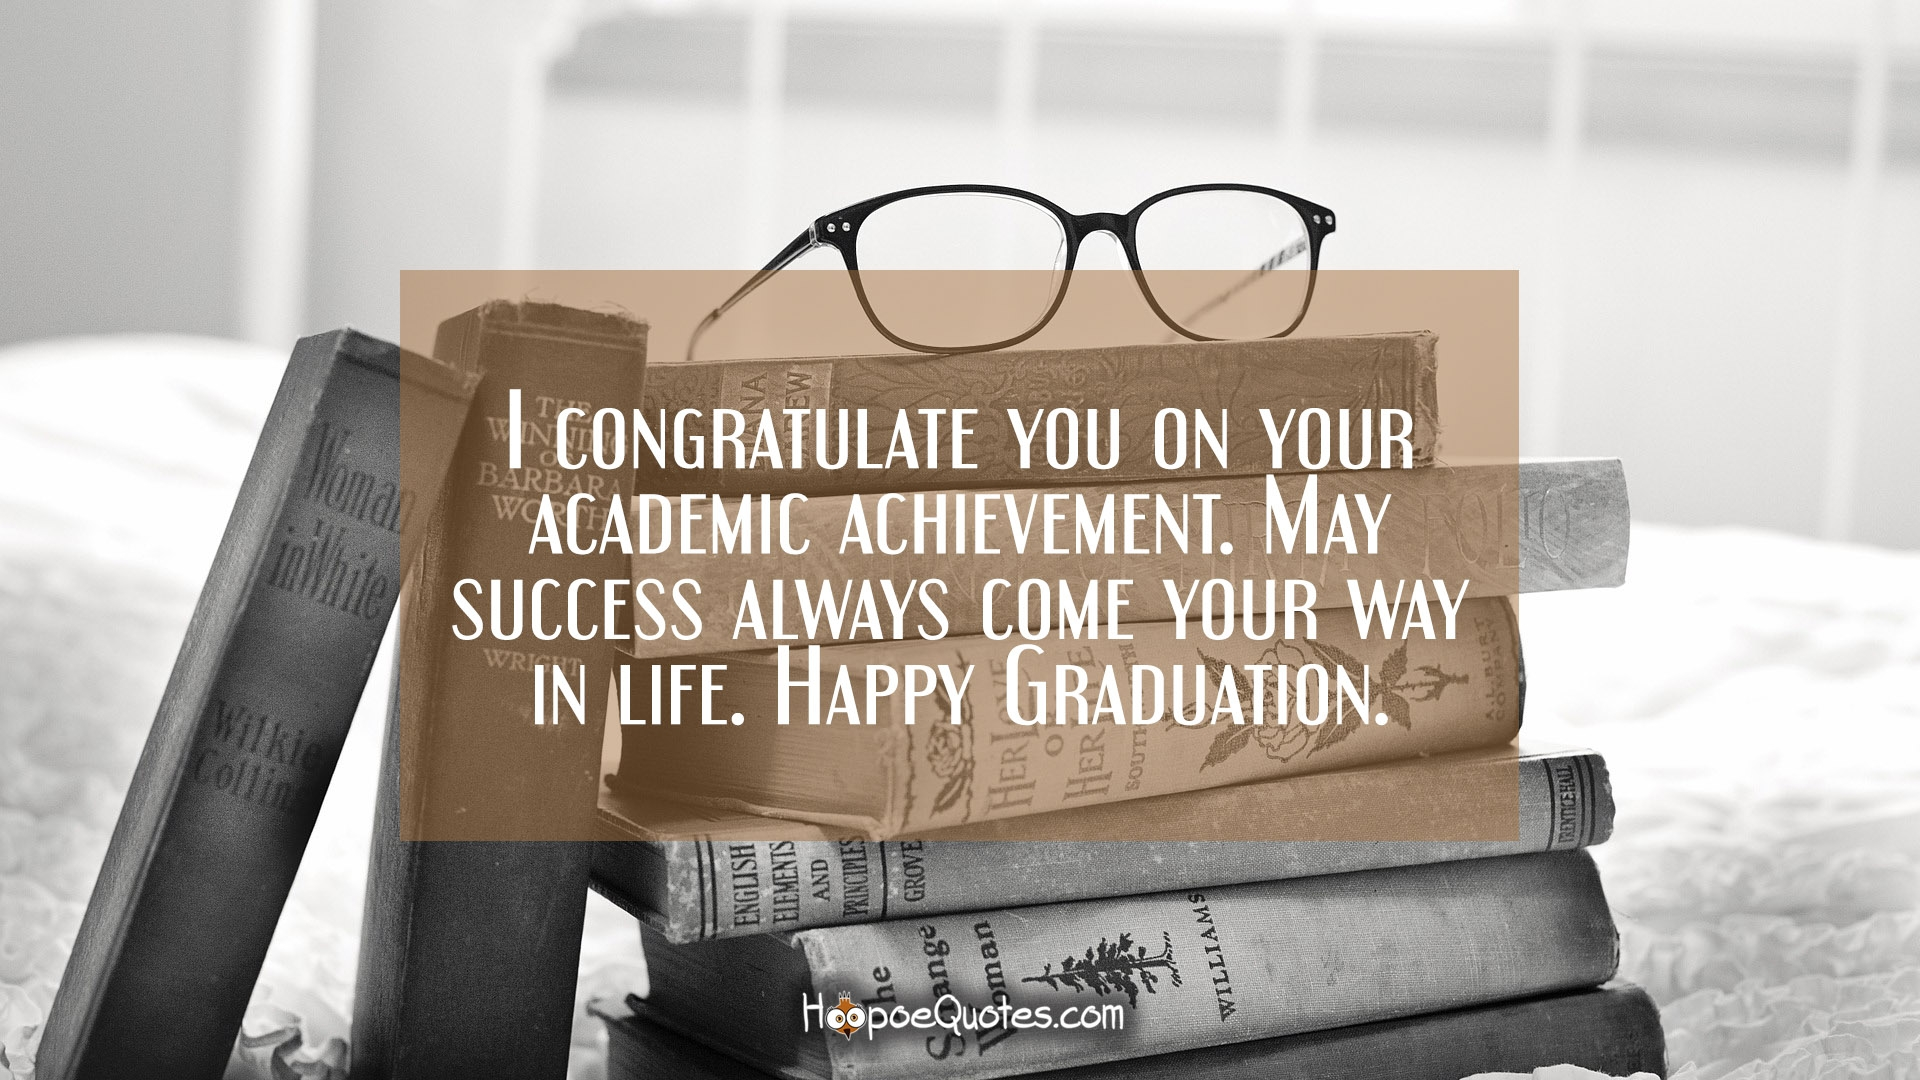 I Congratulate You On Your Academic Achievement May Success Always